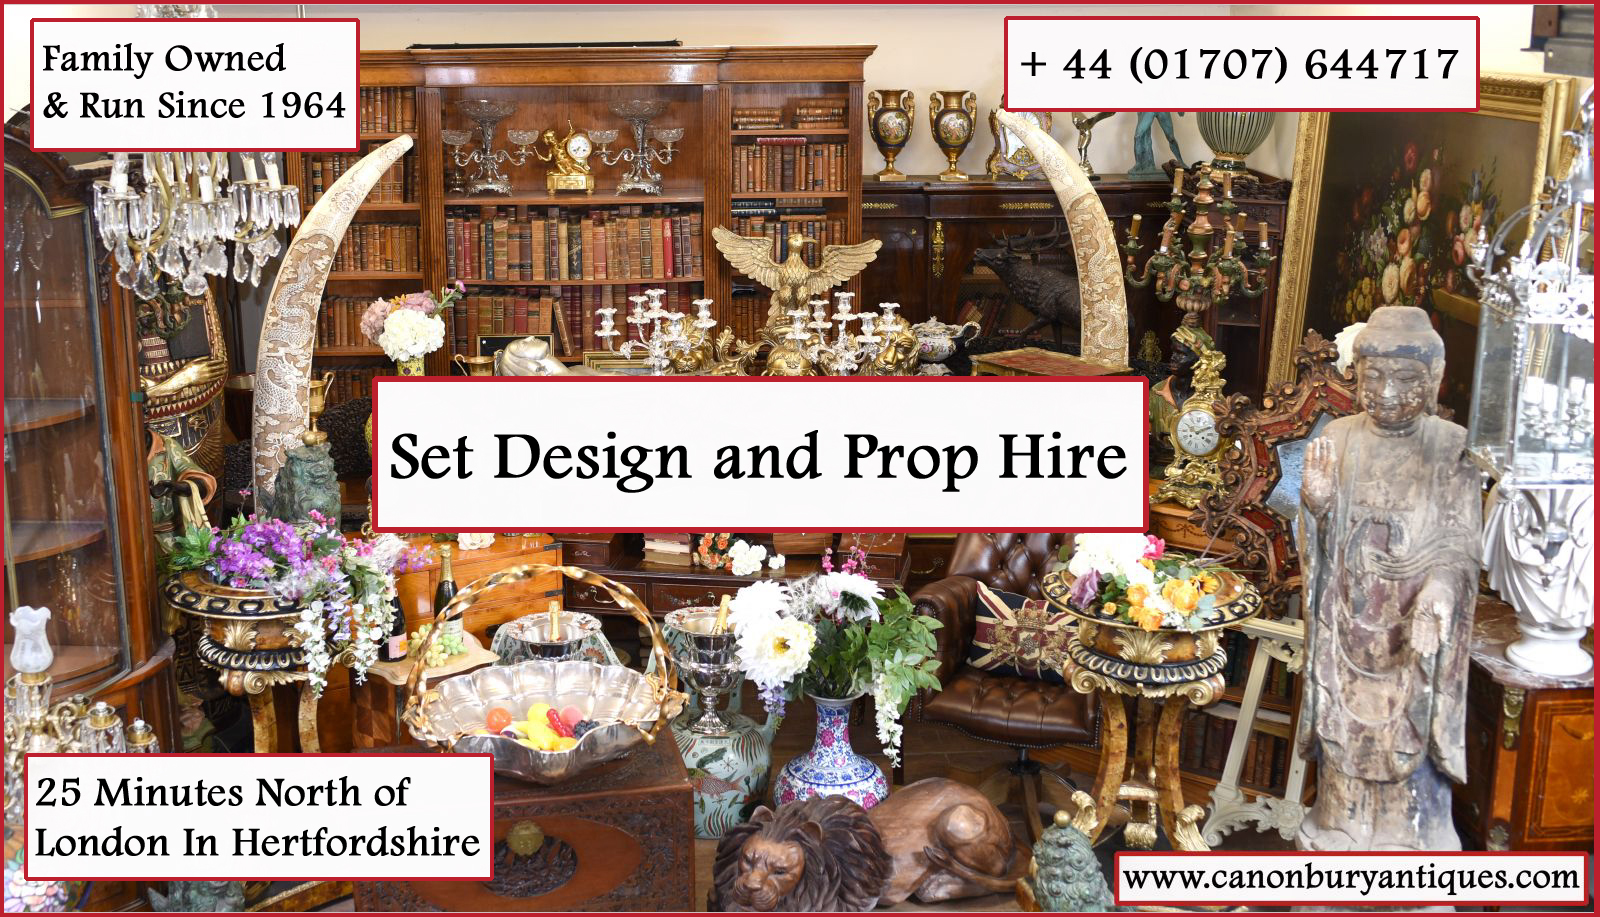 Herfordshire Prop Hire and Set design services